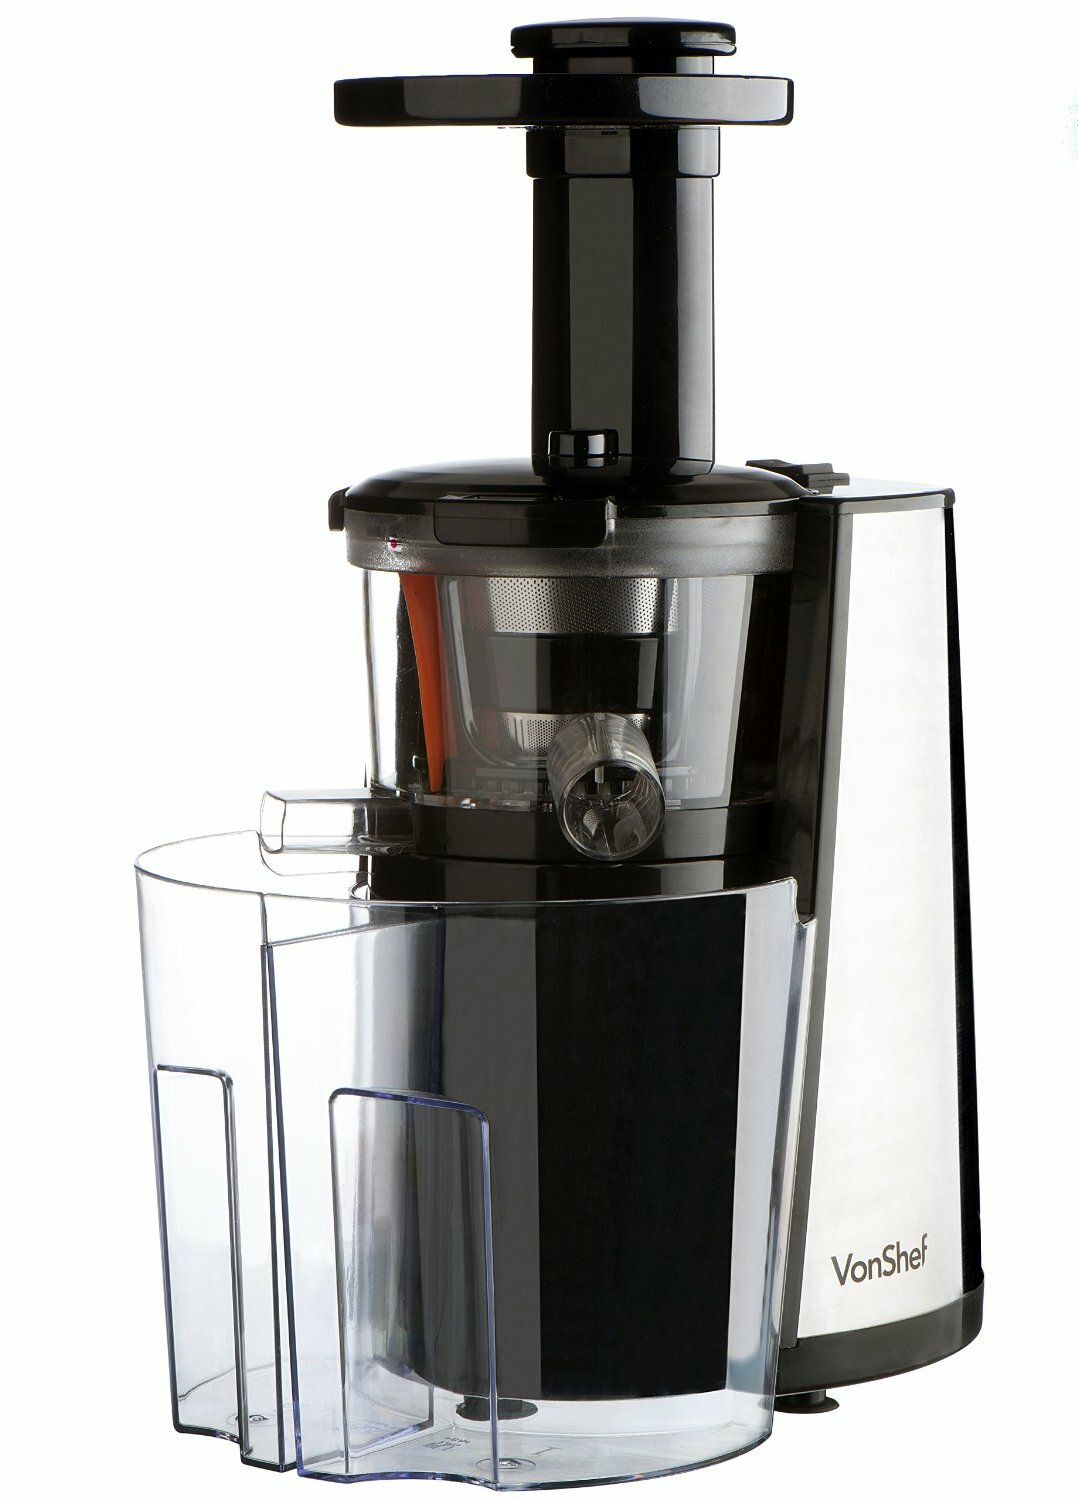 Vonshef Wheatgrass Slow Juicer Review : vonShef 150W Slow Masticating Single Auger Juicer